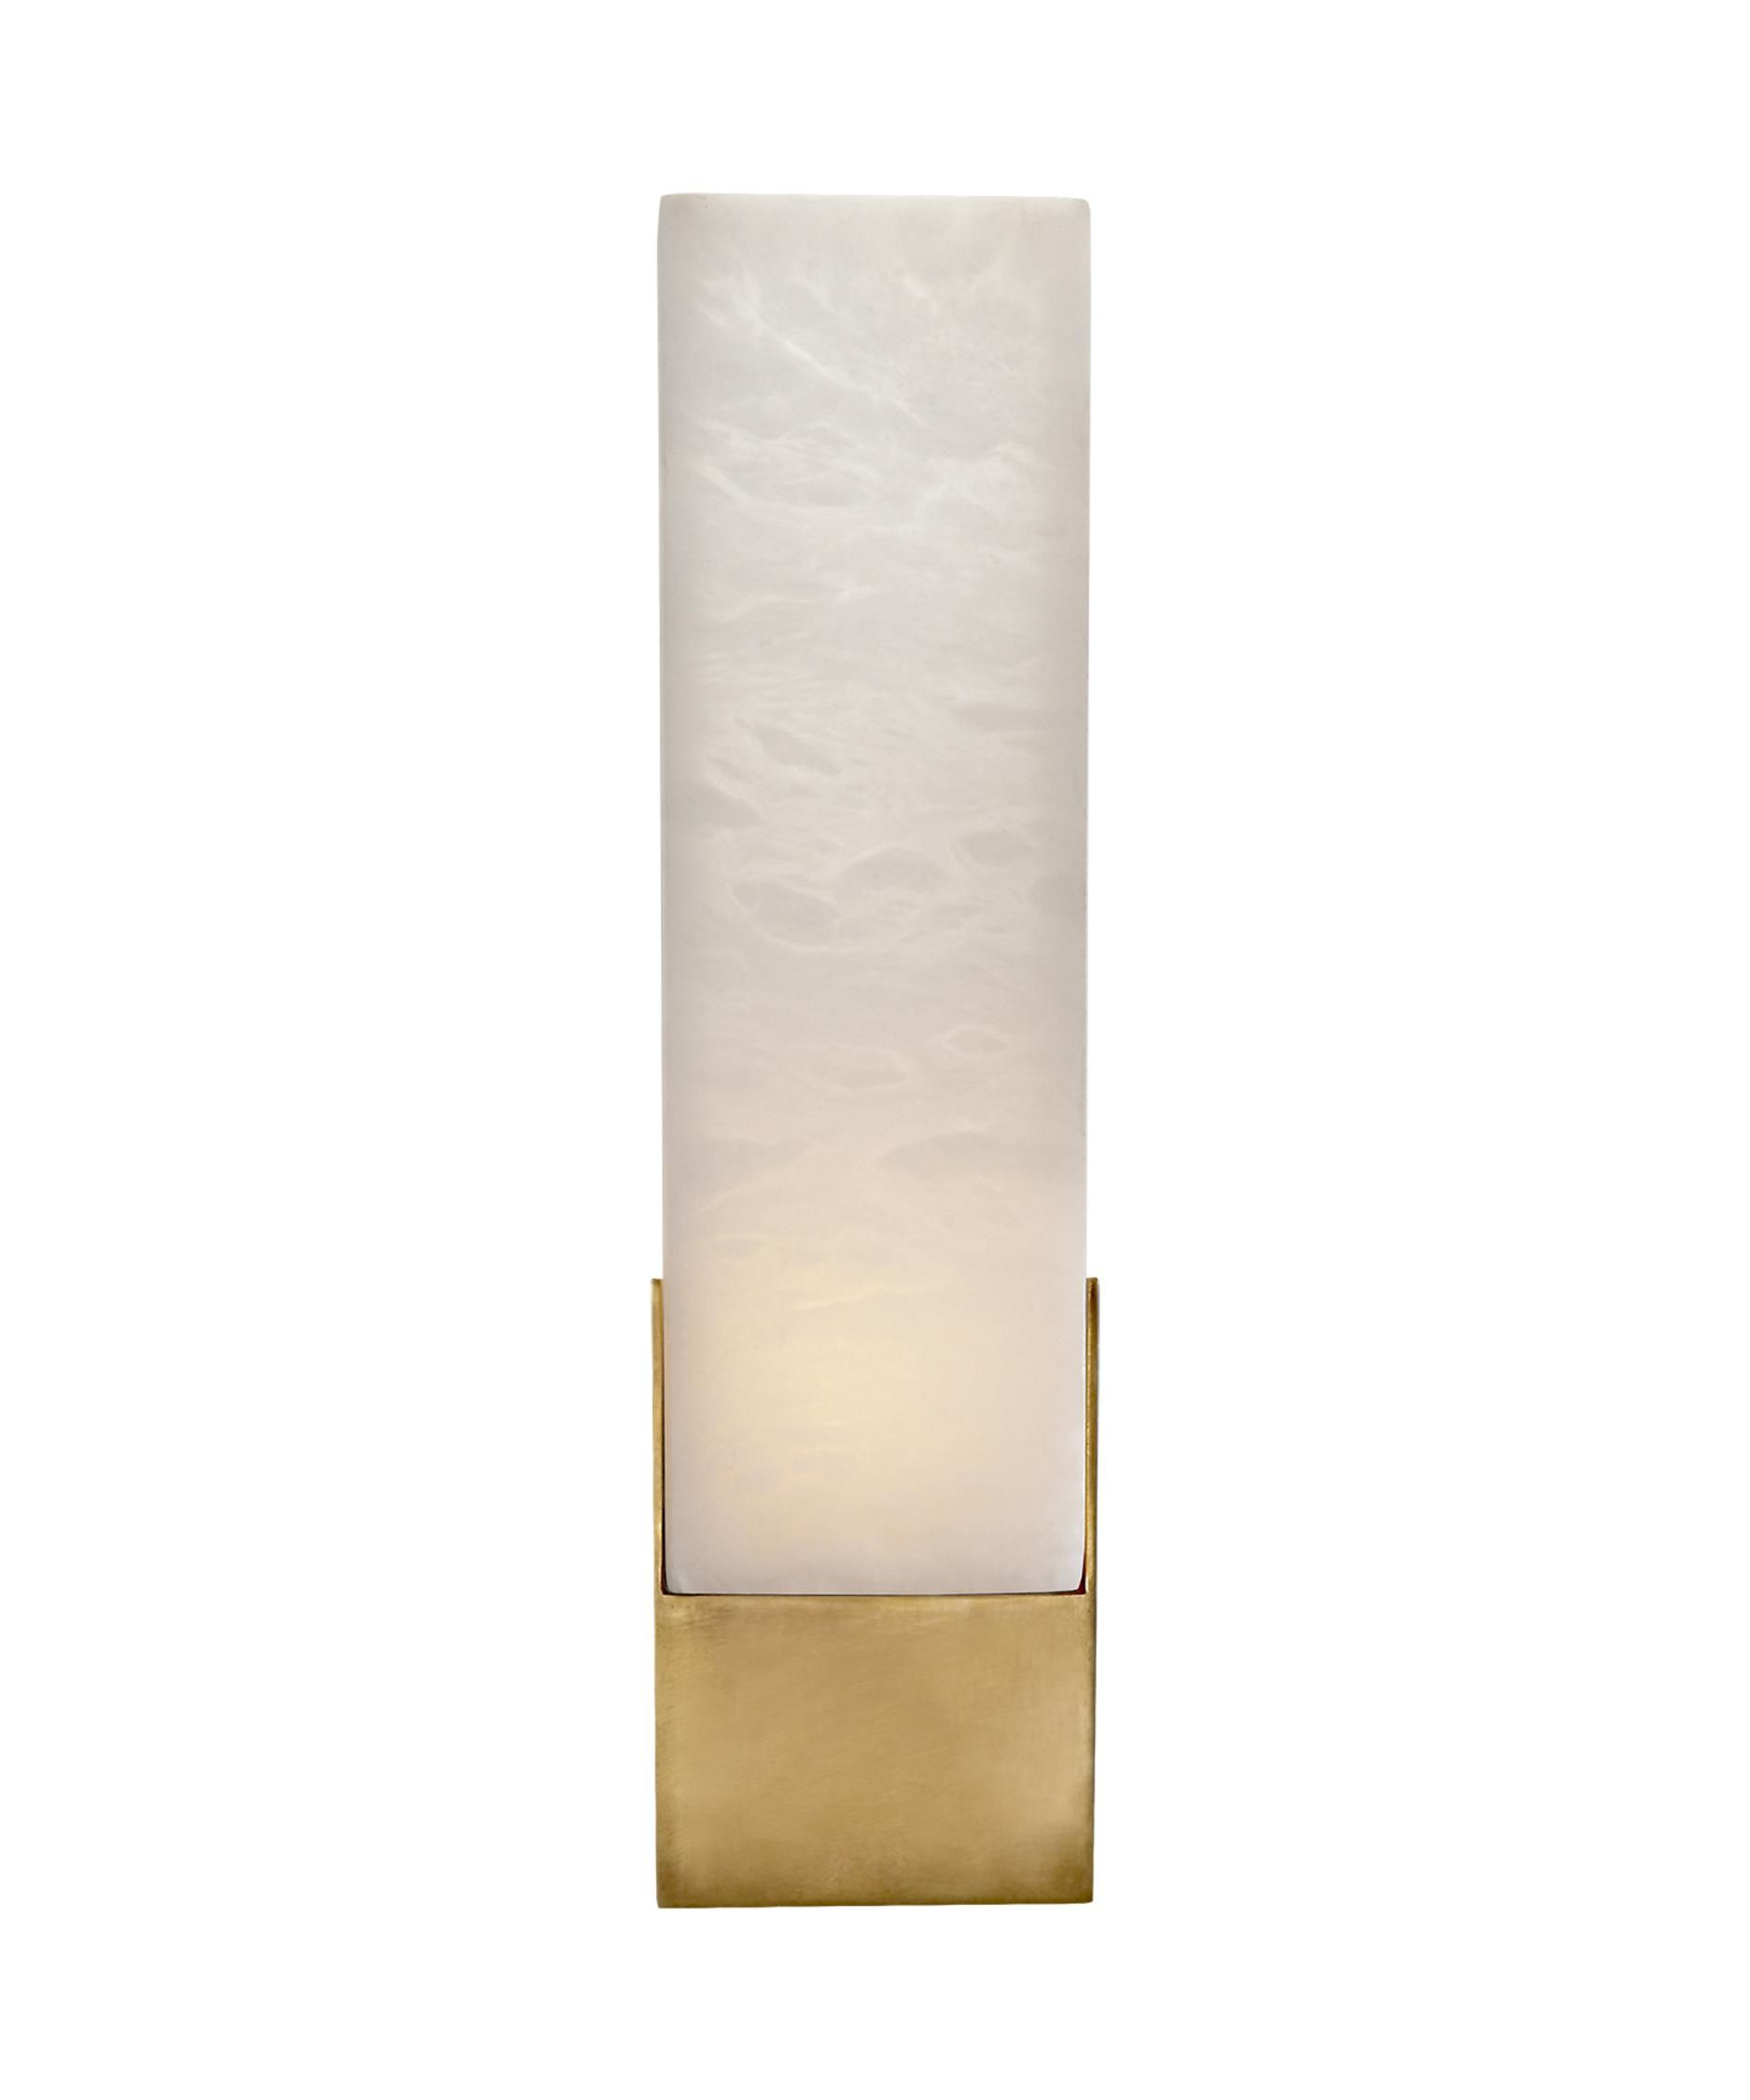 wide your selfoss visual aerin inspiration wall comfy lamps with inch for sconce home comfort sconces